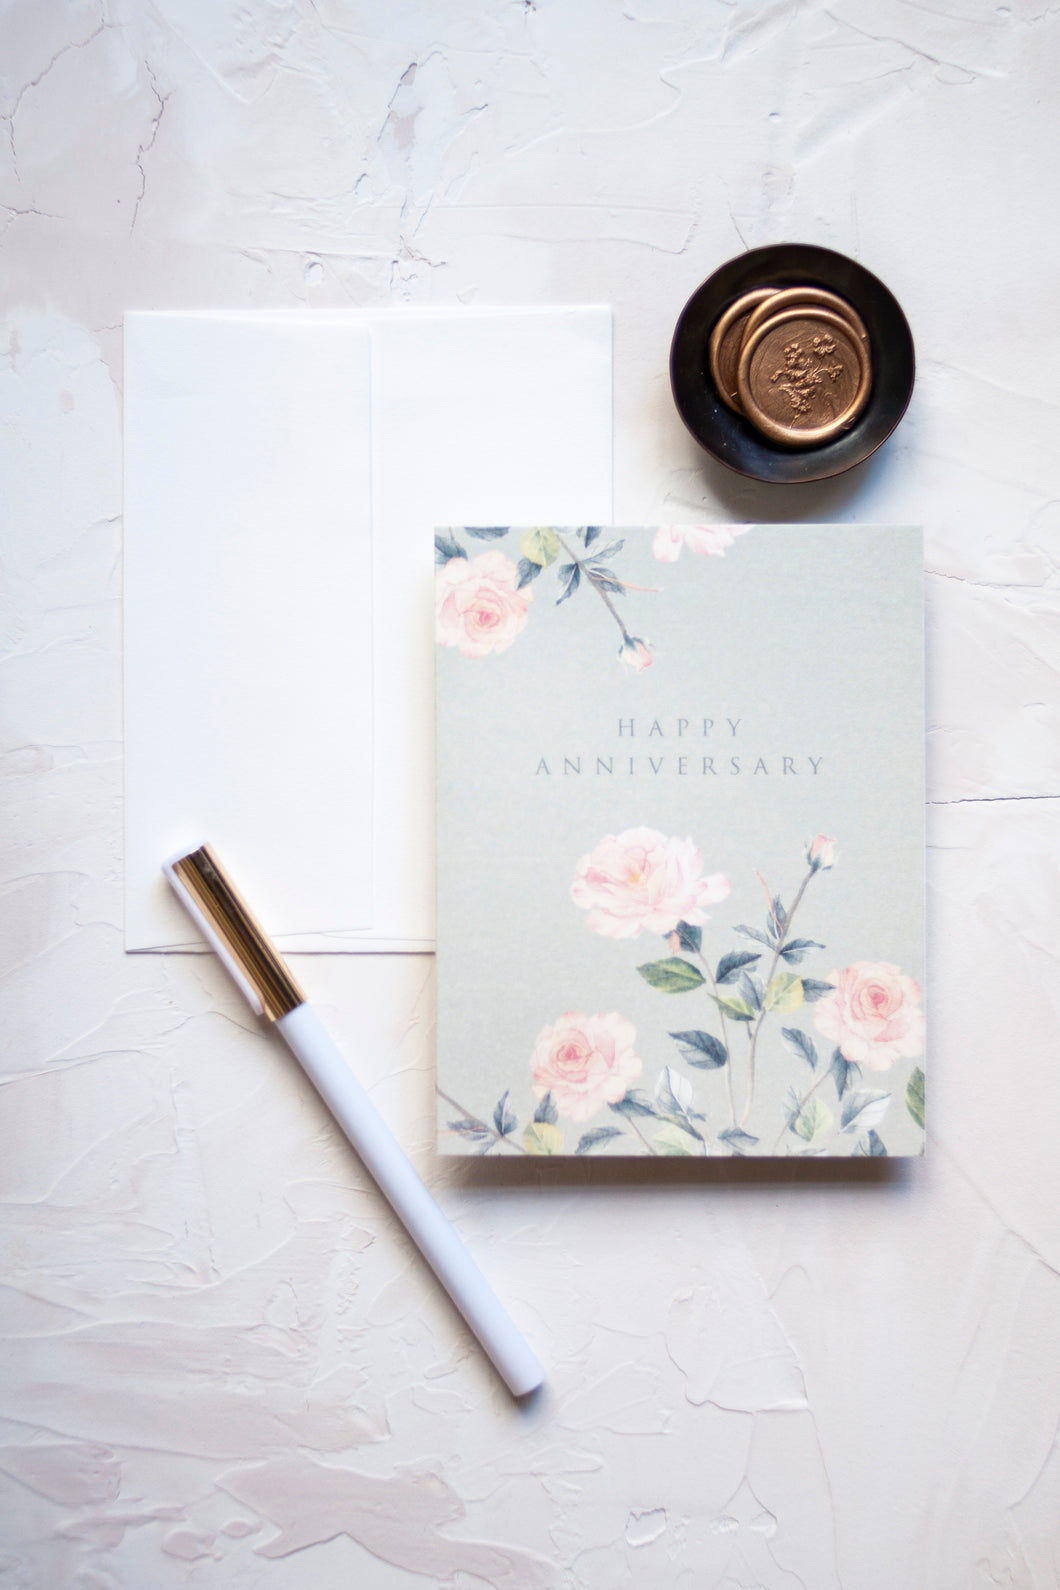 Happy Anniversary Digitally Printed Greeting Card with Rose Watercolor